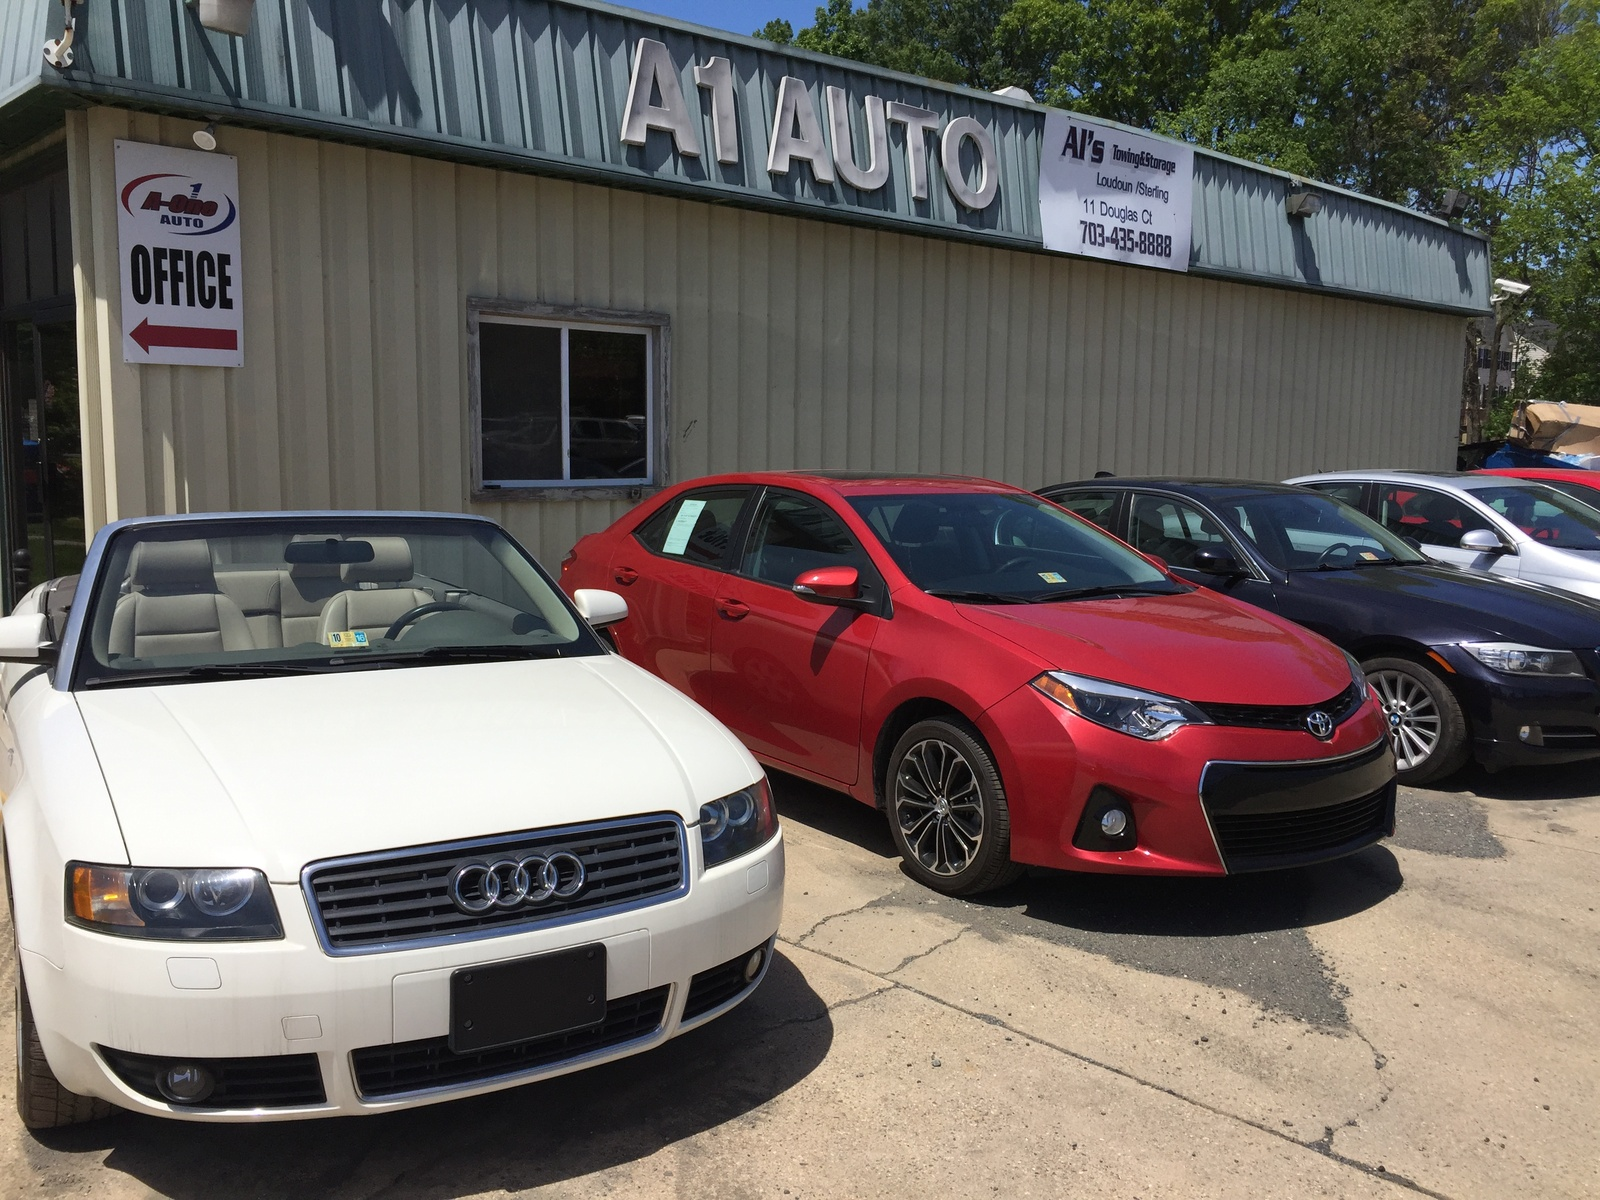 A1 Auto Sales Of Dulles Sterling Va Read Consumer Reviews Browse Used And New Cars For Sale